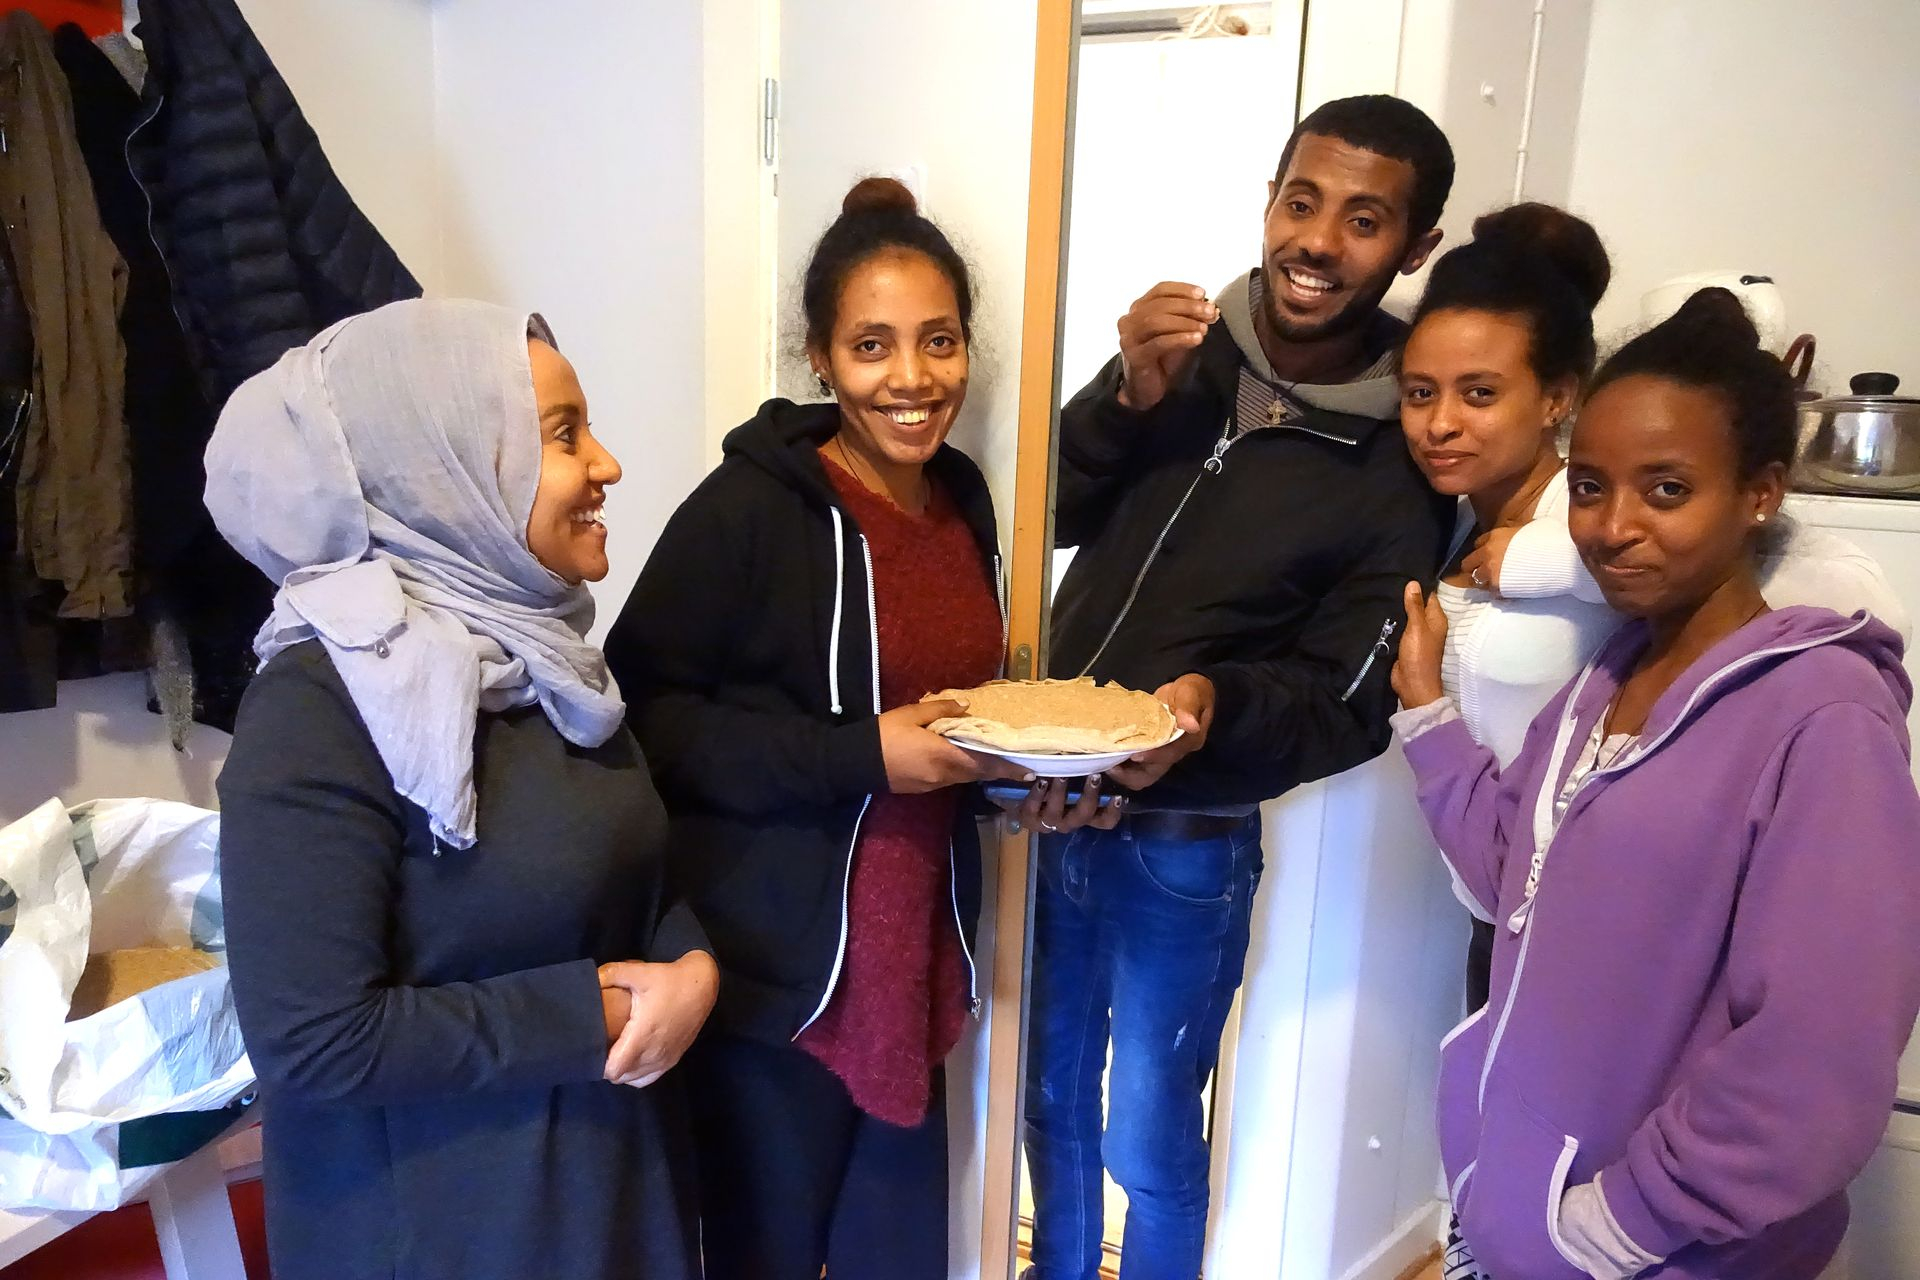 SOLD MENS: Yared Russom sticks his head to the women and says he's hungry. Leila Khaled (fv), Tsega Kidane, Winta Andebrhna and Semhar Hagos give him Eritrean bread.